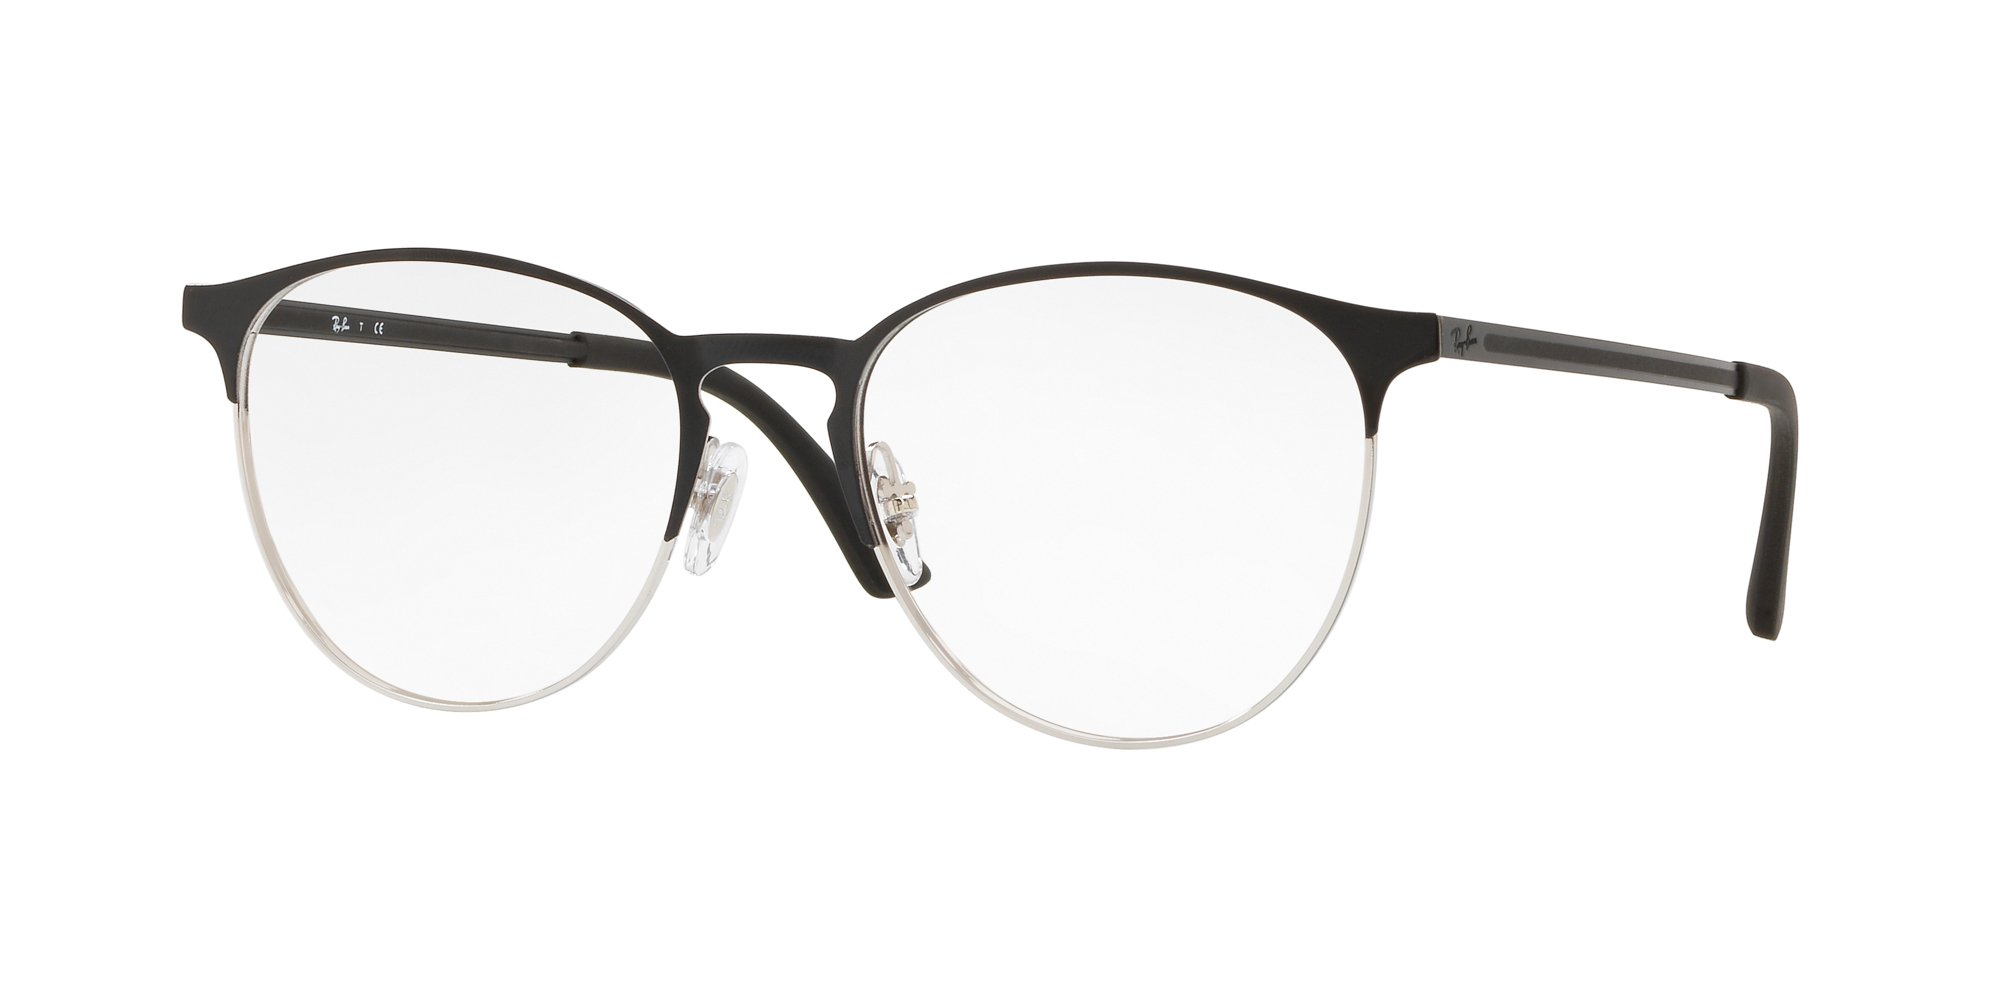 Ray-Ban RX6375 Round Metal Eyeglass Frames, Black On Silver/Demo Lens, 53 mm by Ray-Ban